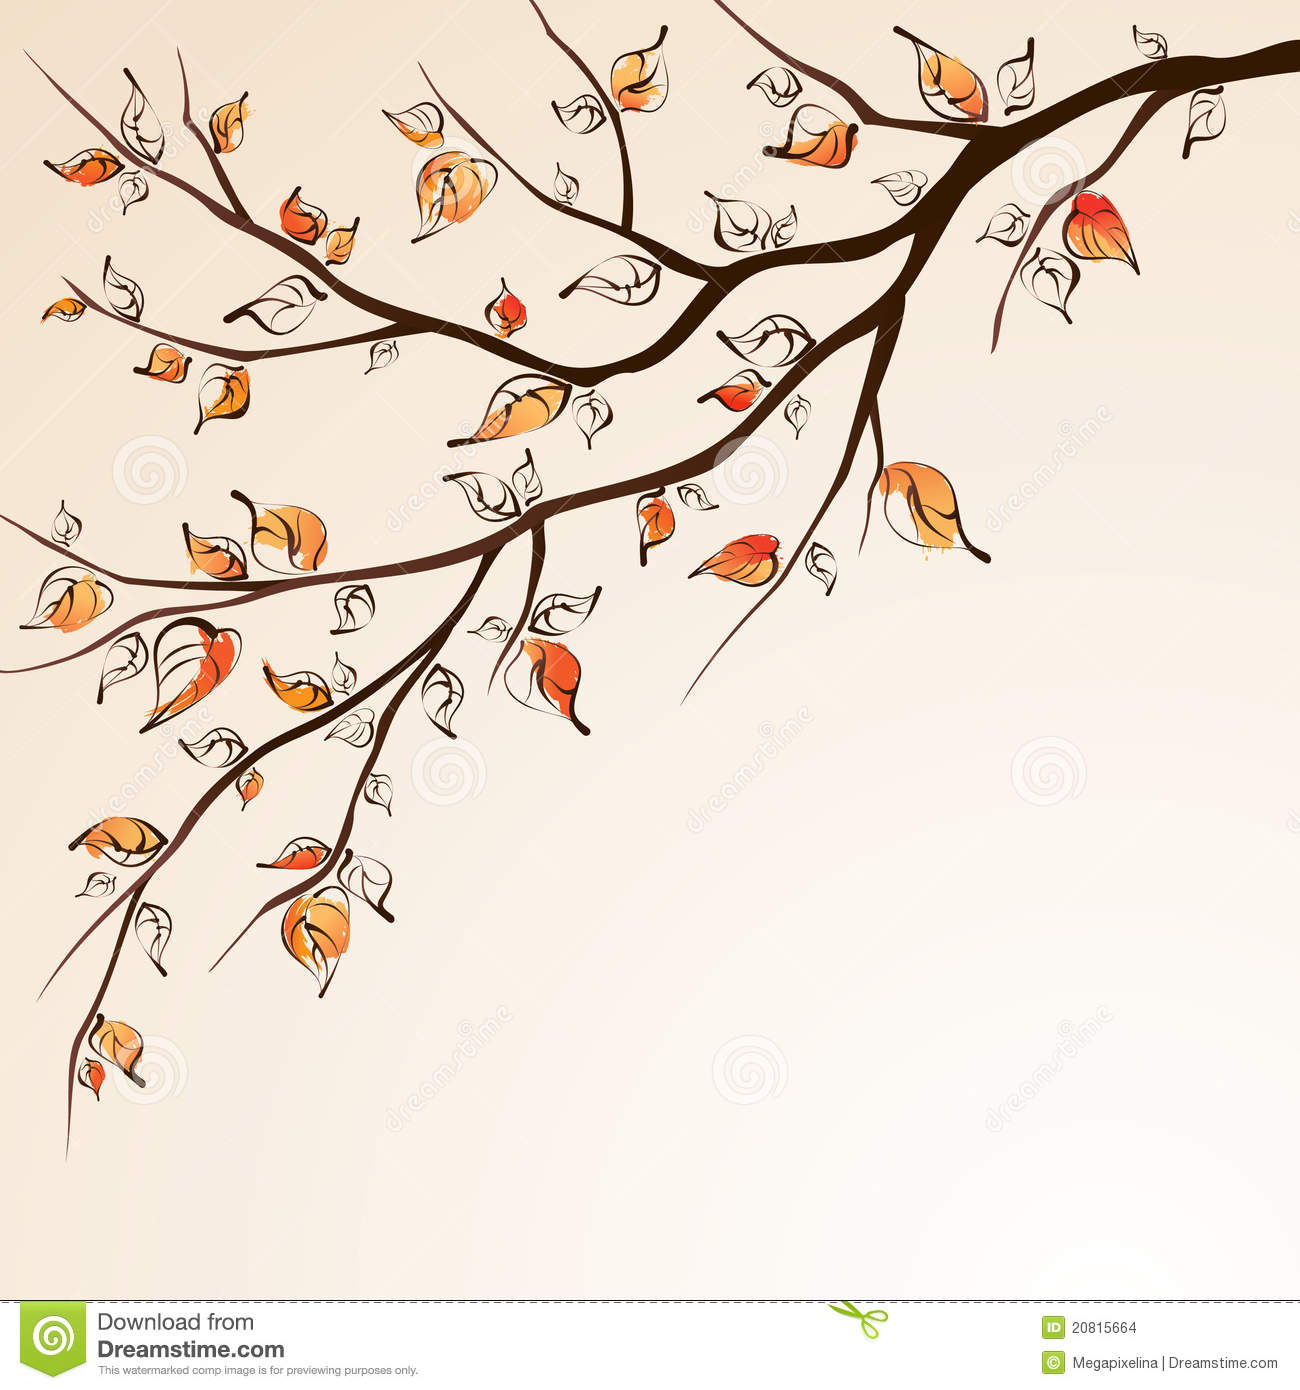 More similar stock images of ` Autumn tree branch `